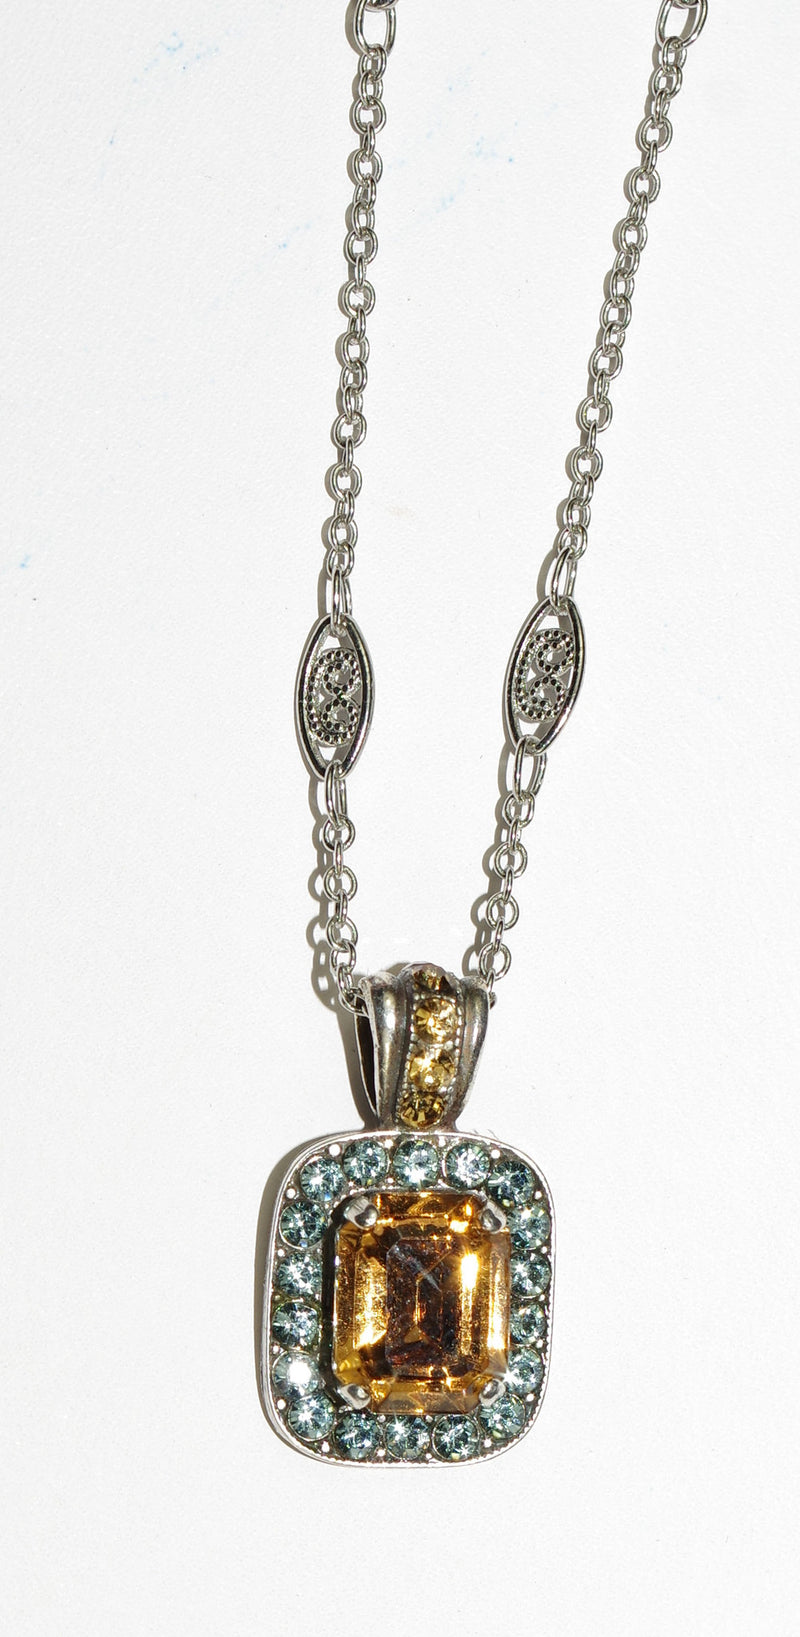 "MARIANA PENDANT MOON DROPS amber stone with topaz small stones, 18"" chain in silver setting"